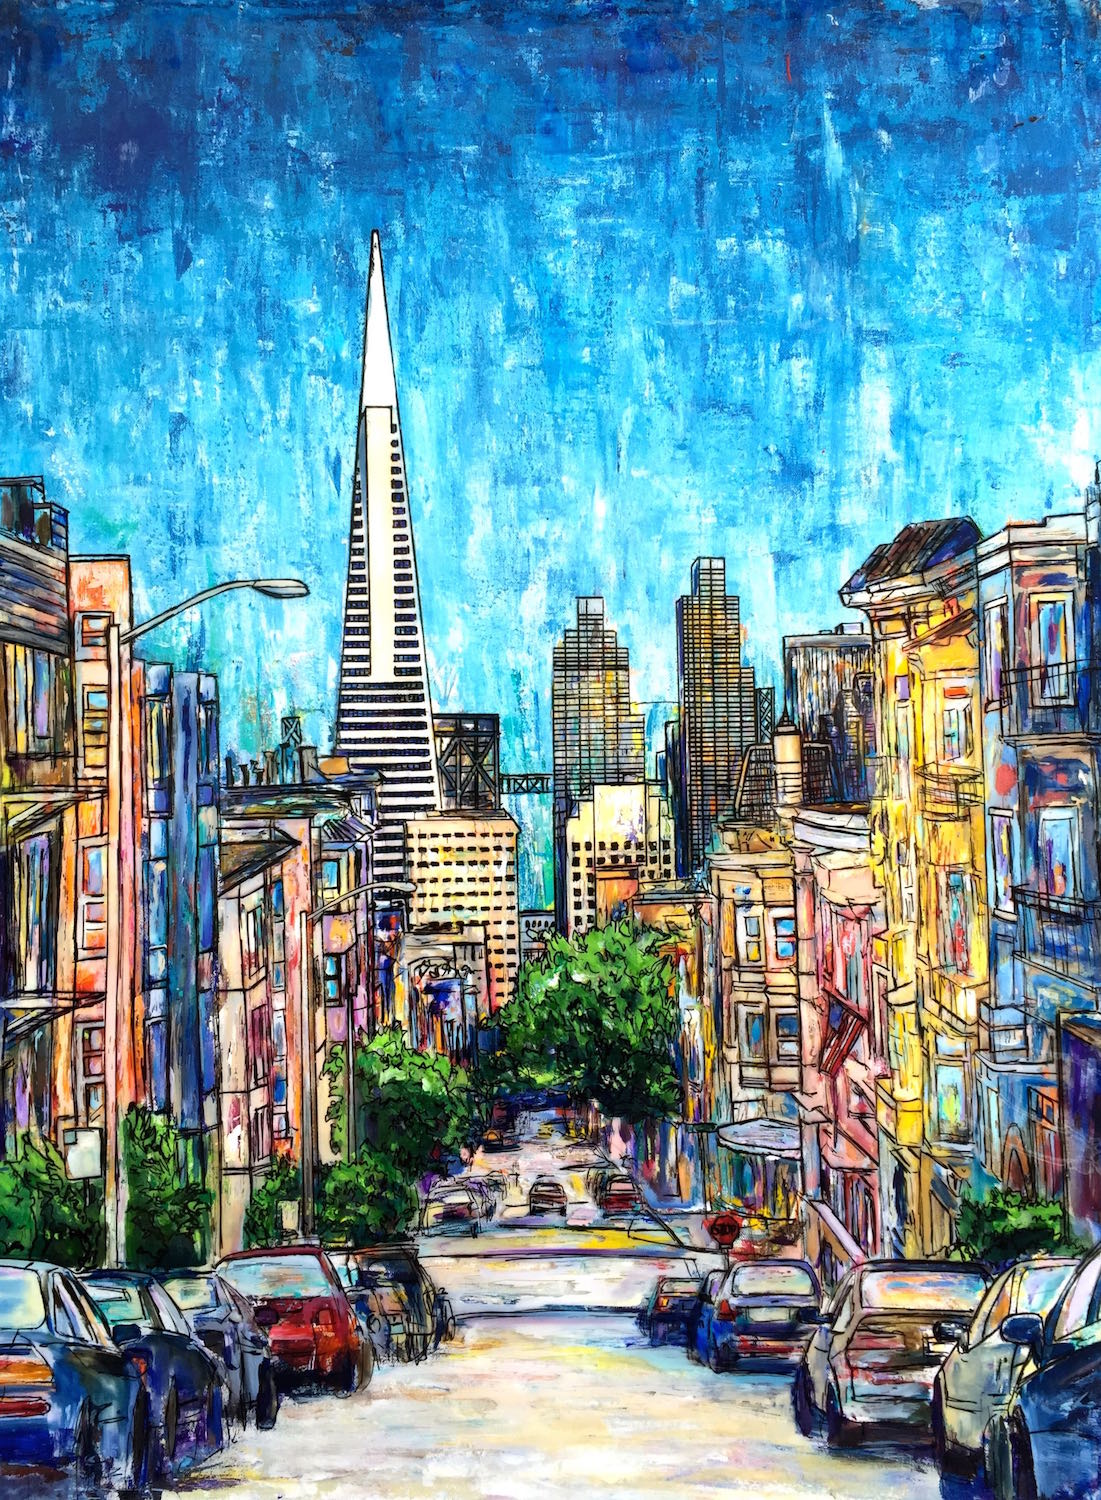 """CLAY AND JONES (SAN FRANCISCO)   30 x 40""""   Acrylic, acetate, ink, and epoxy resin on canvas   PRINTS AVAILABLE / ORIGINAL AVAILABLE"""